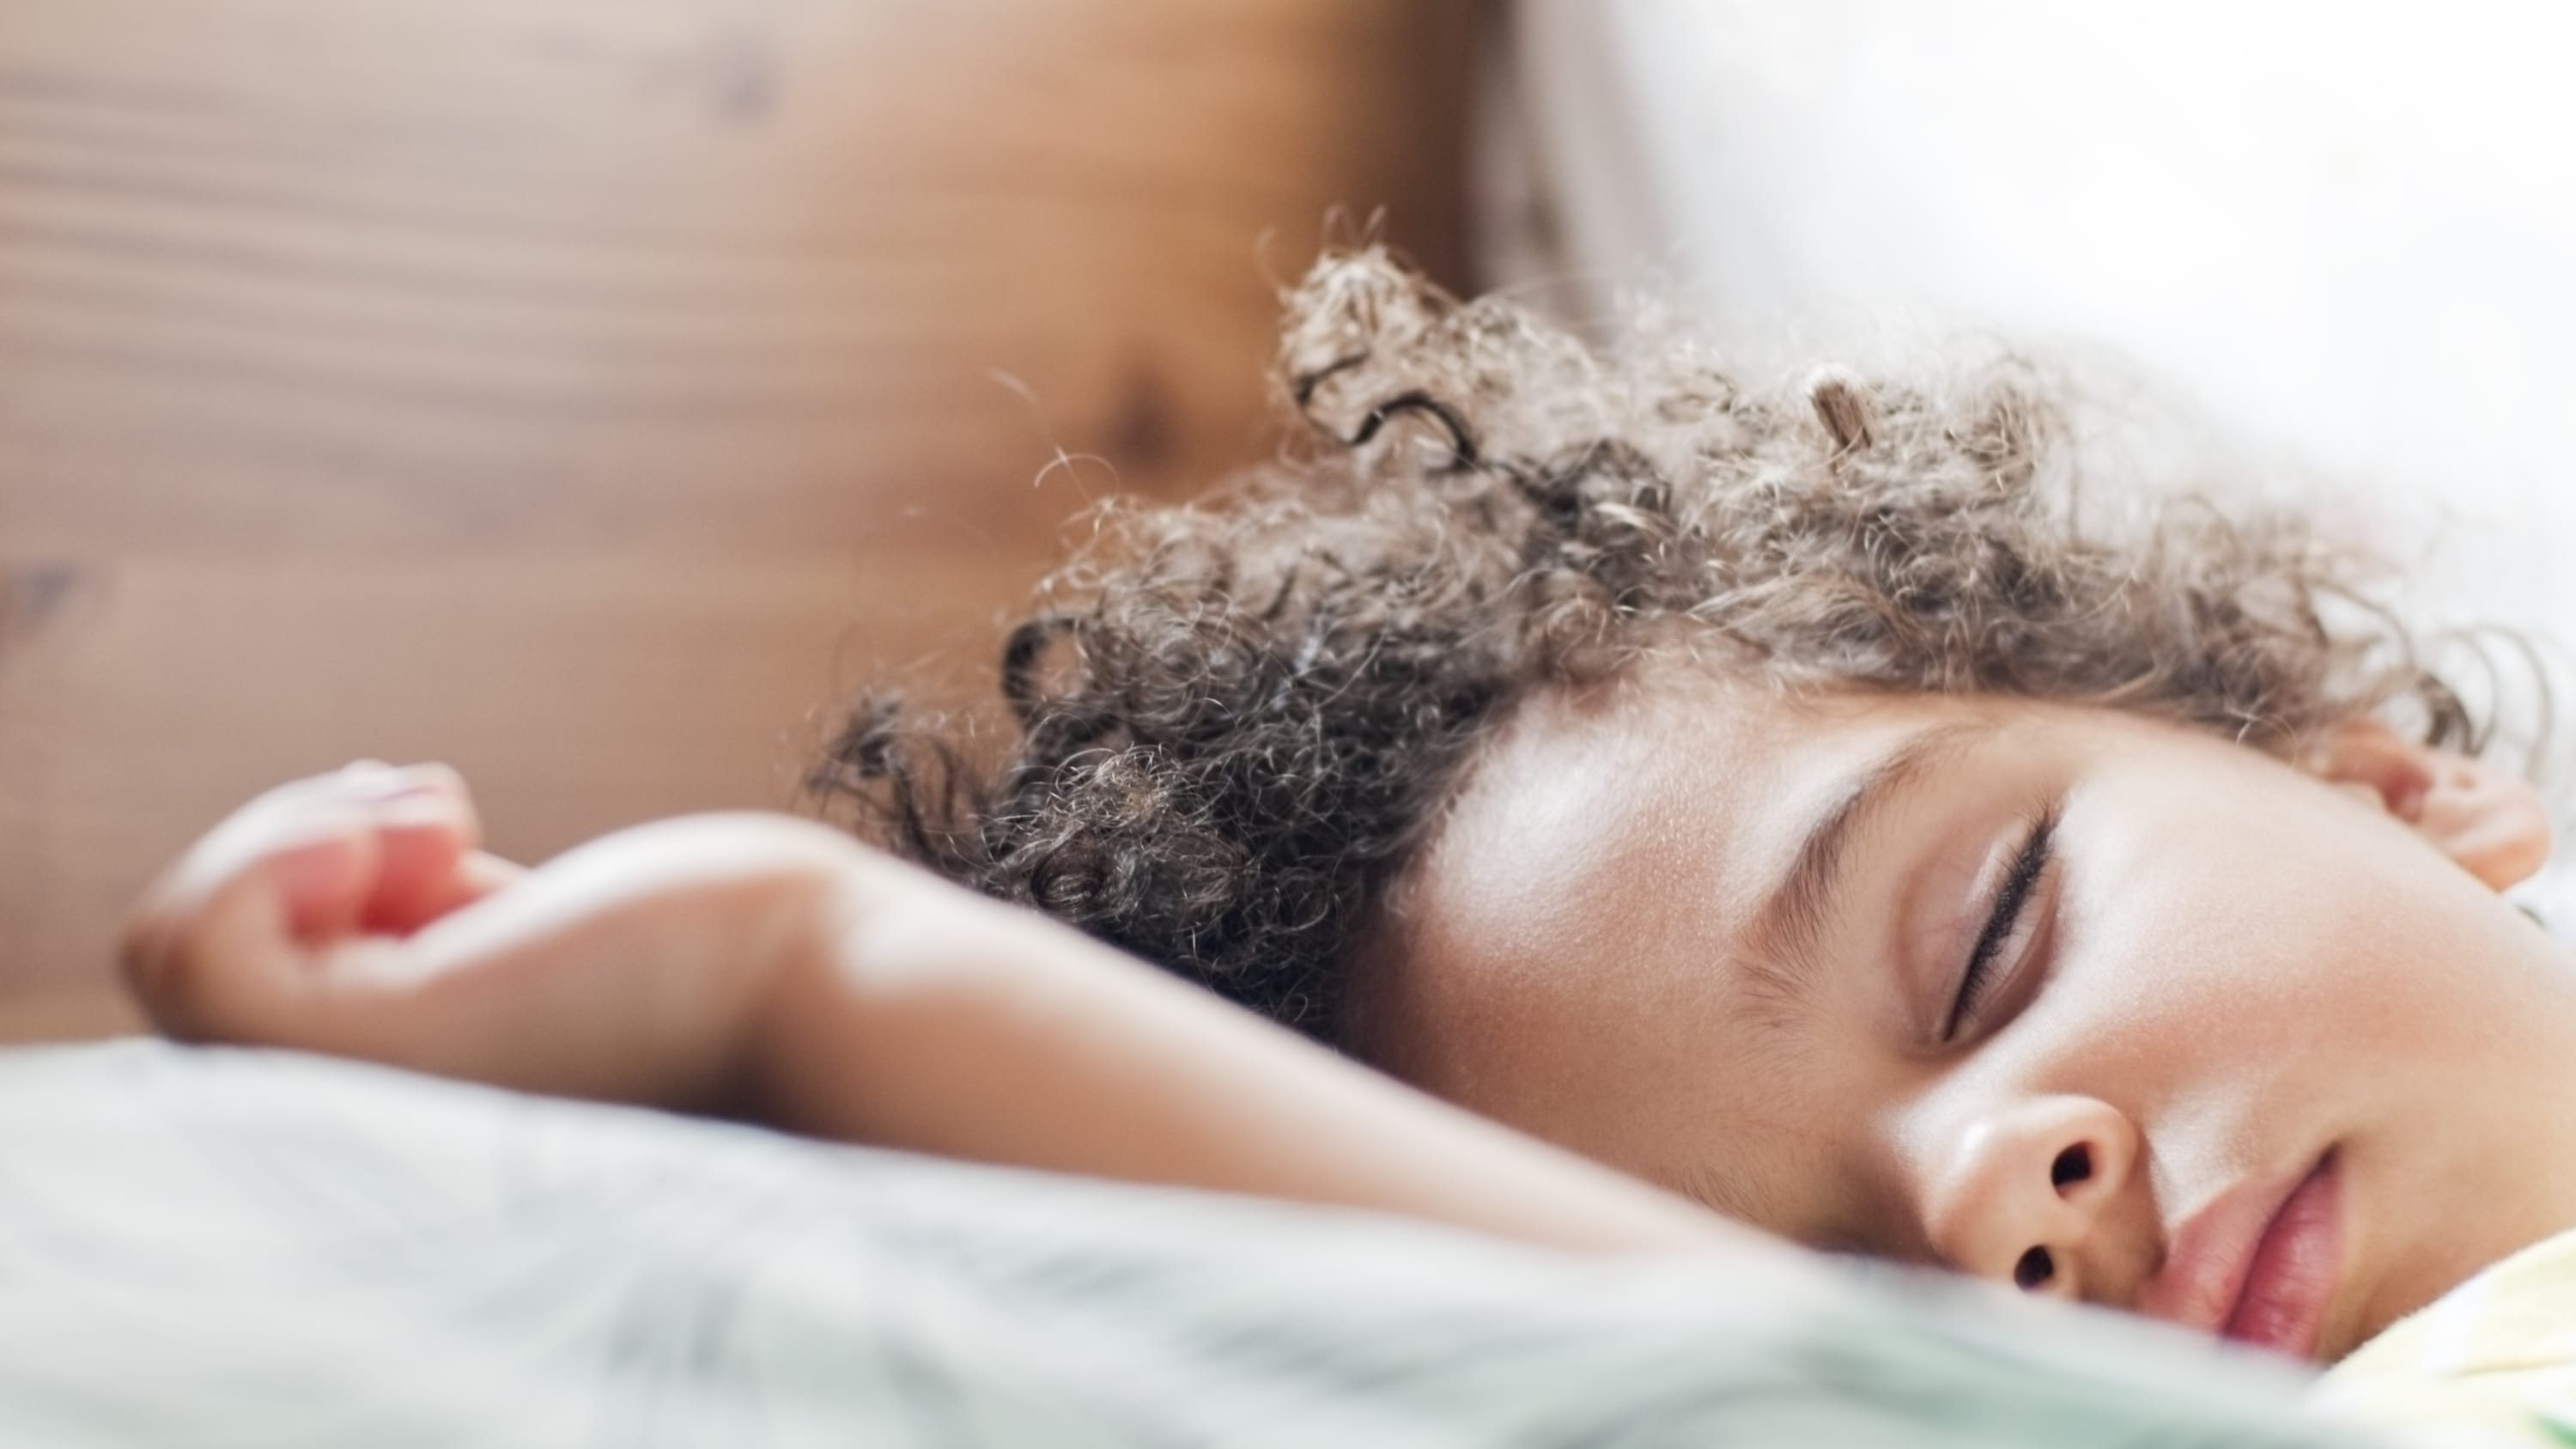 A little girl who may have obstruction sleep apnea is fast asleep in bed.